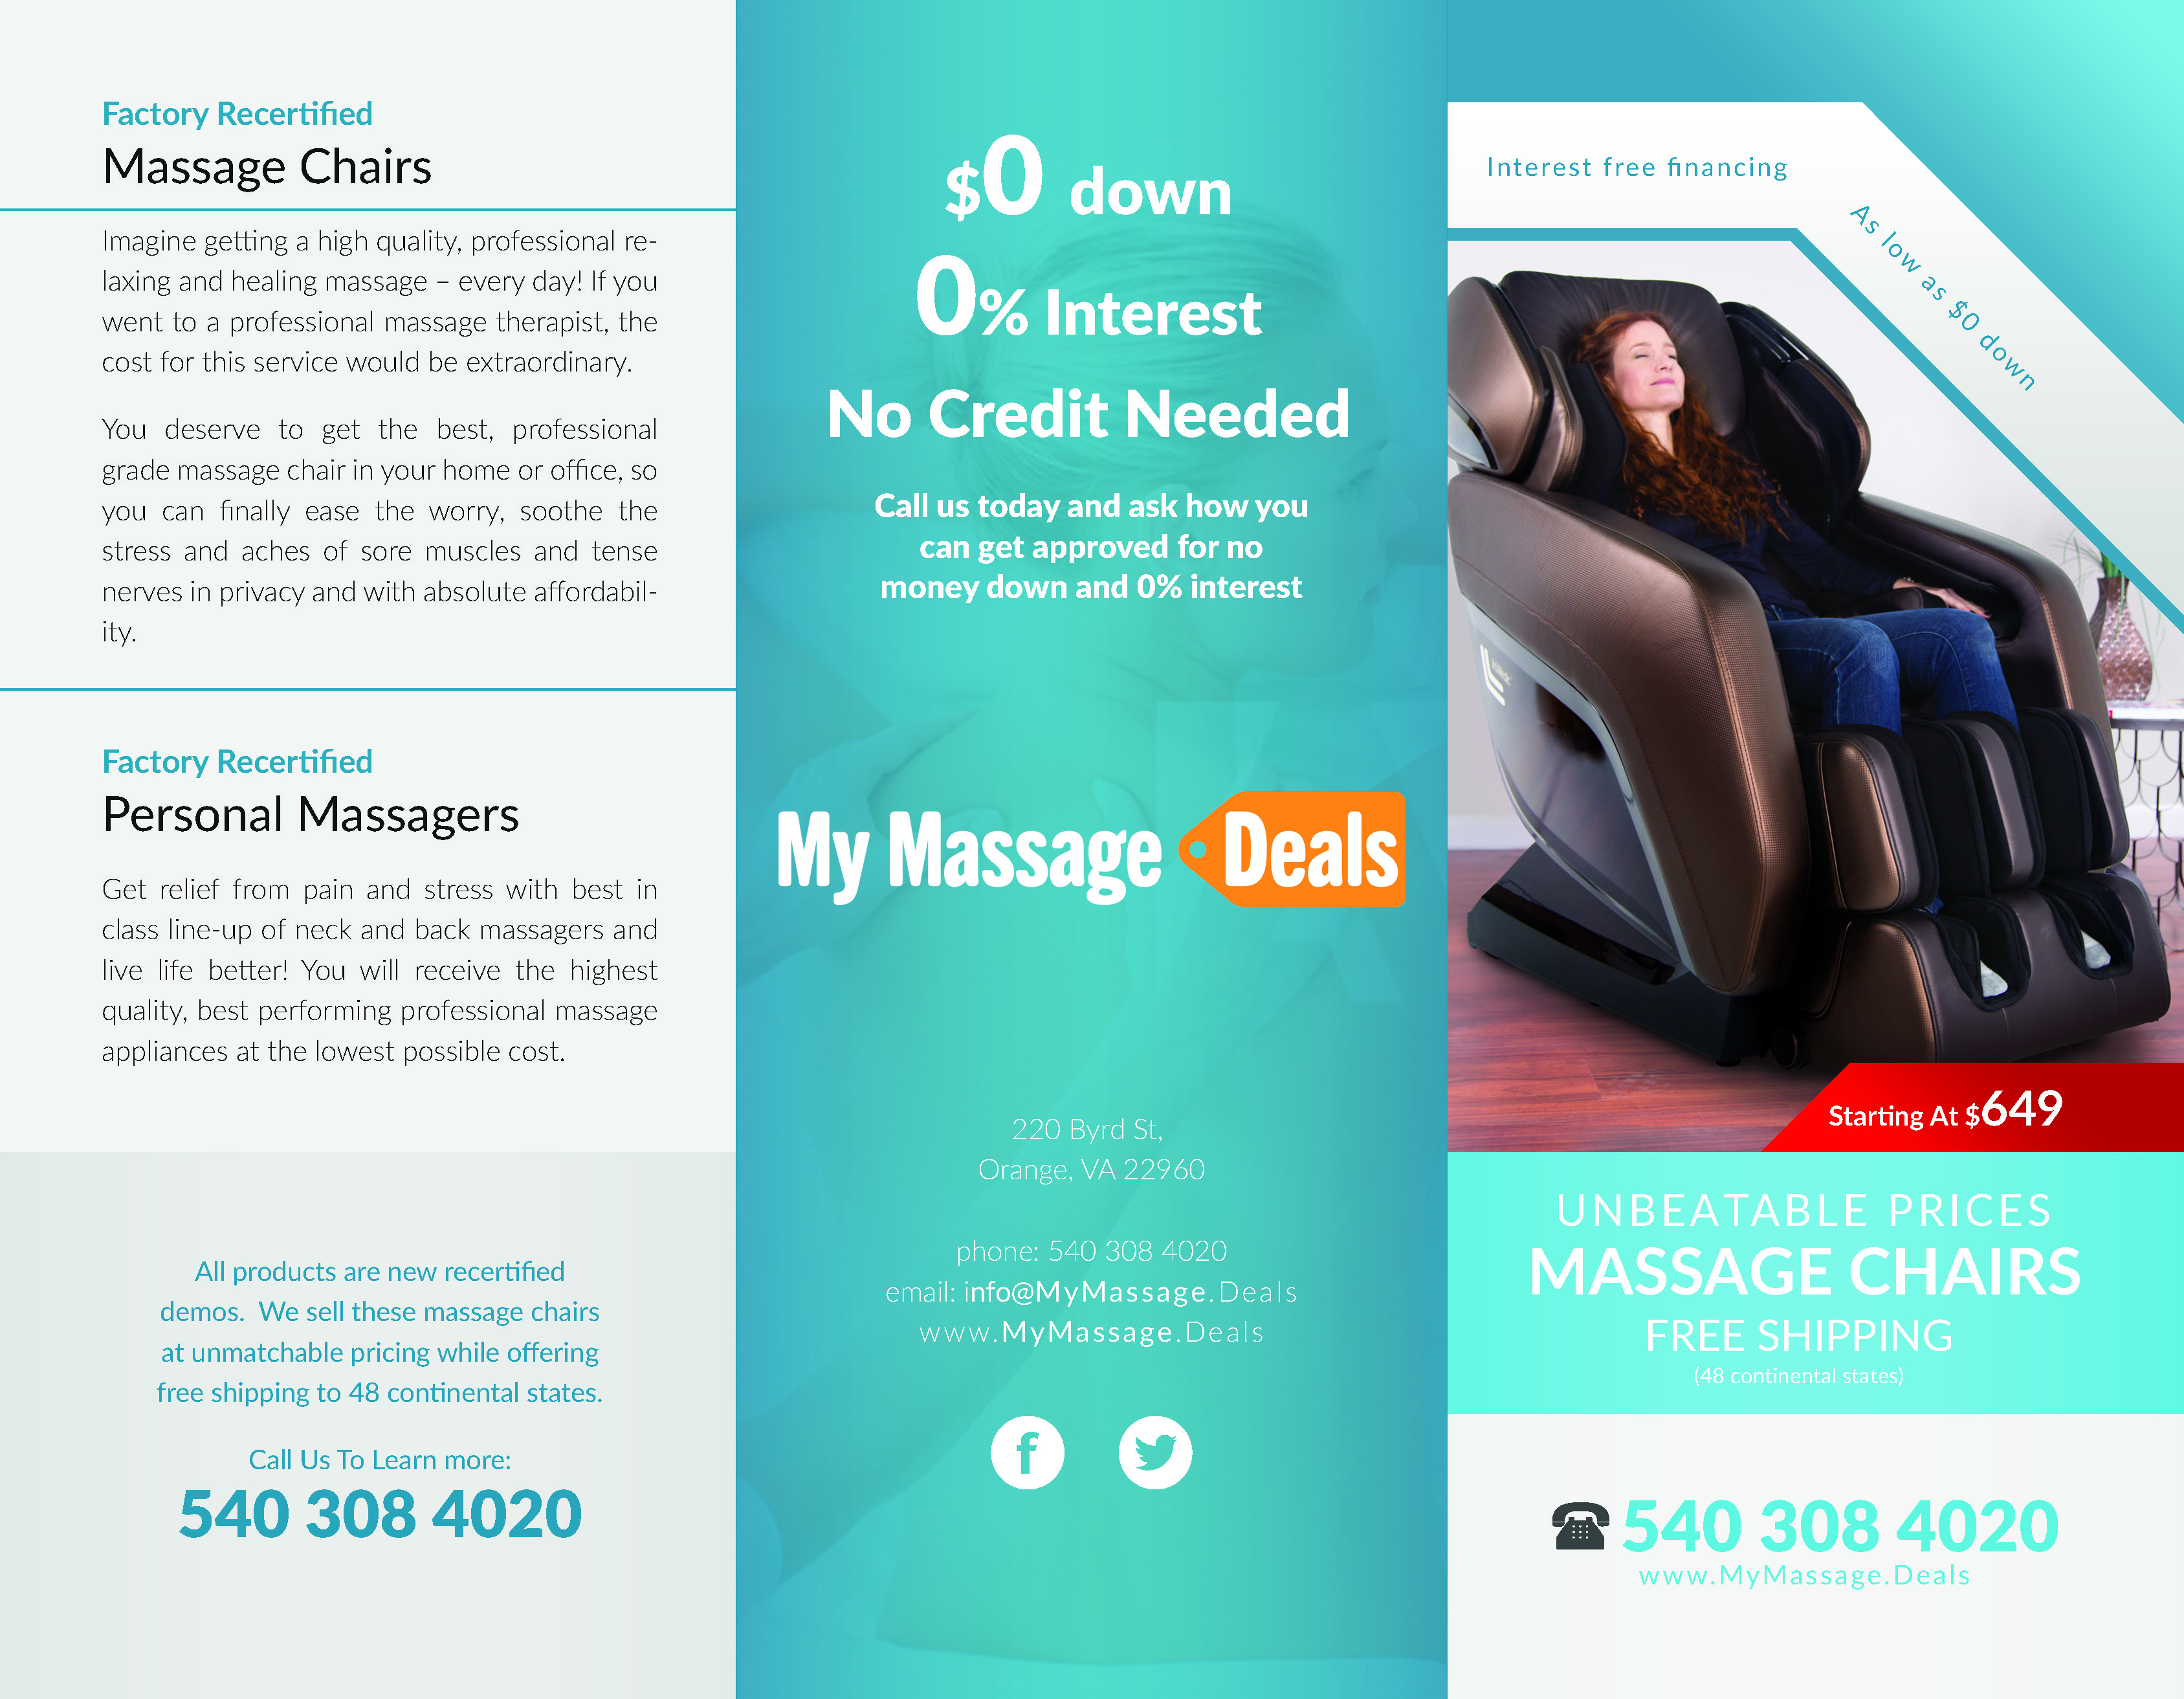 My Massage Deals - TriFold Brochure Layout Design - Full Outside